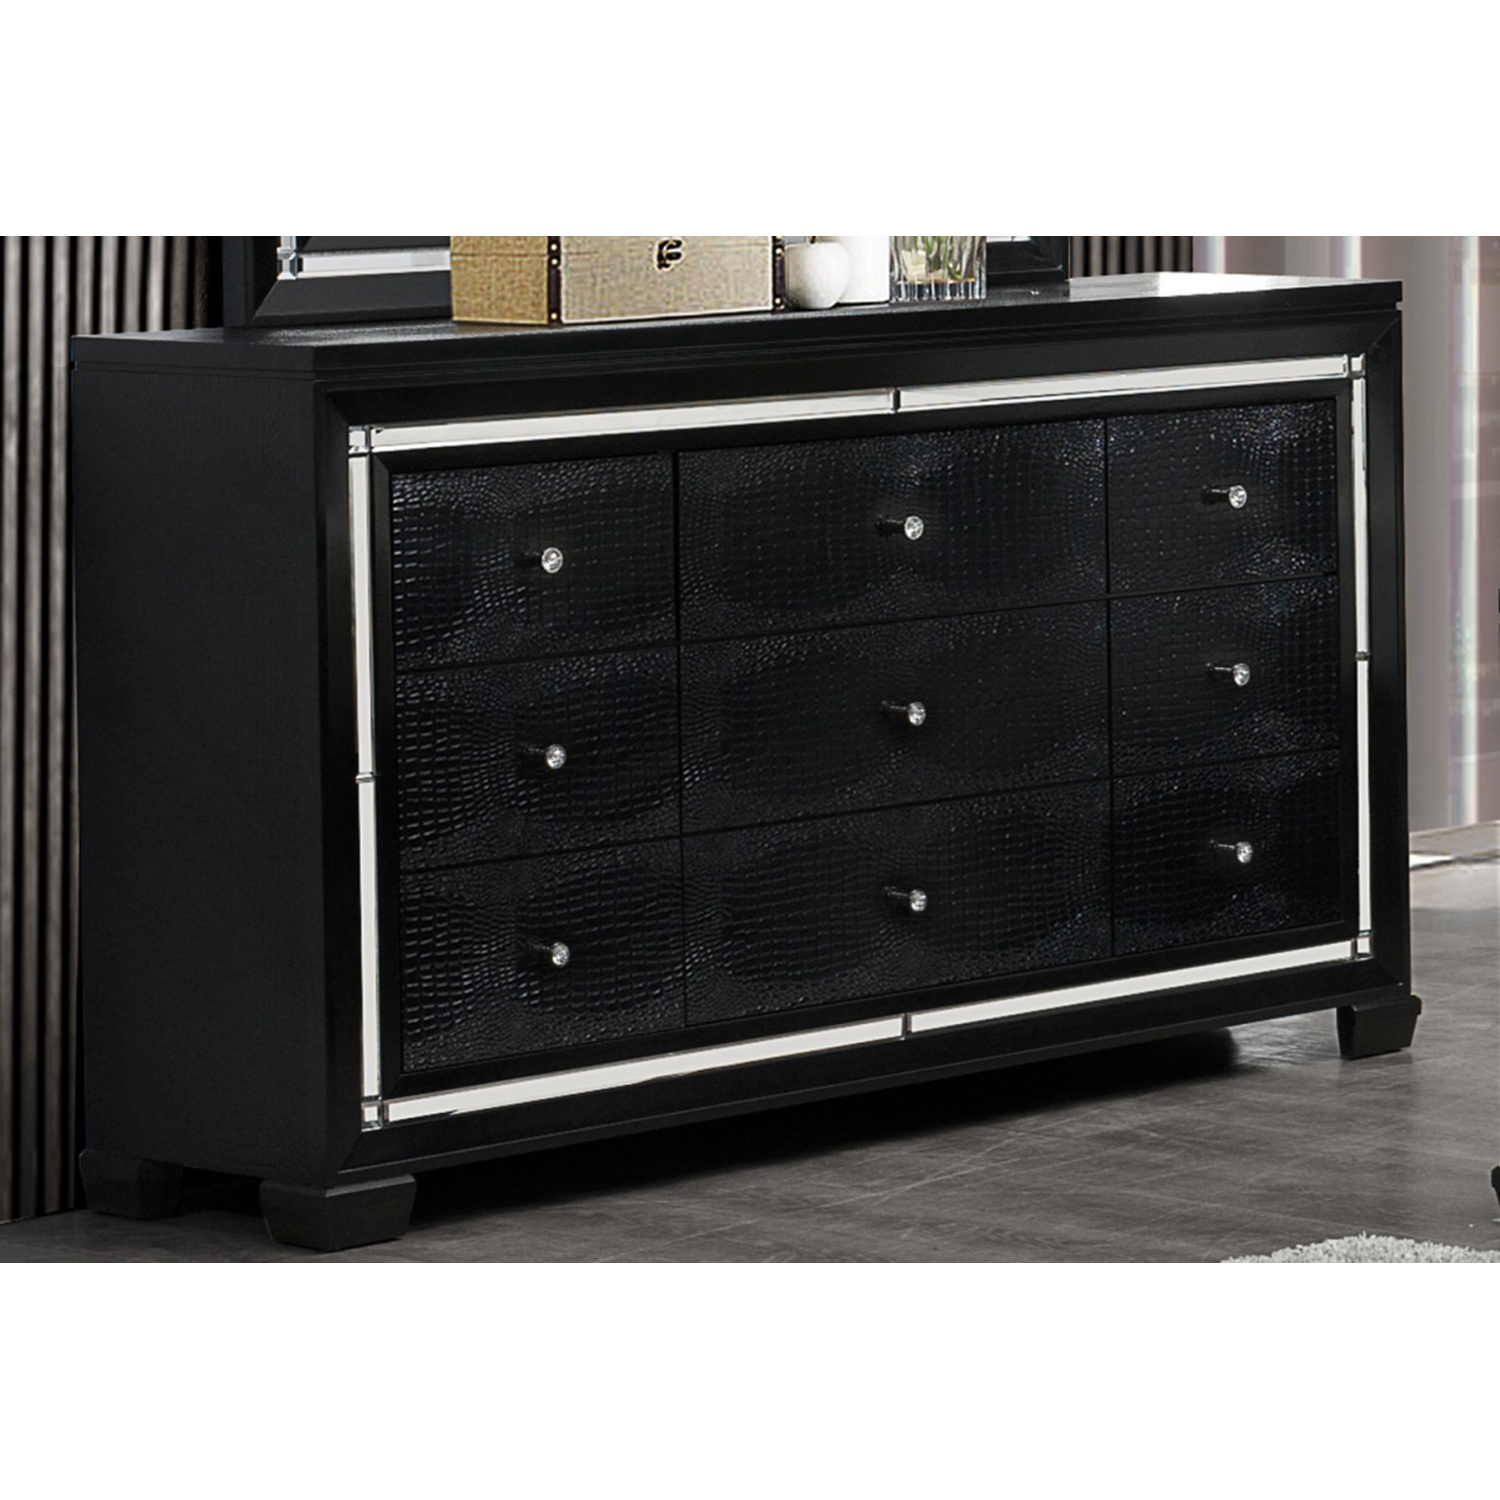 Galaxy Dresser - Metallic Black - GLO-GALAXY-D-M